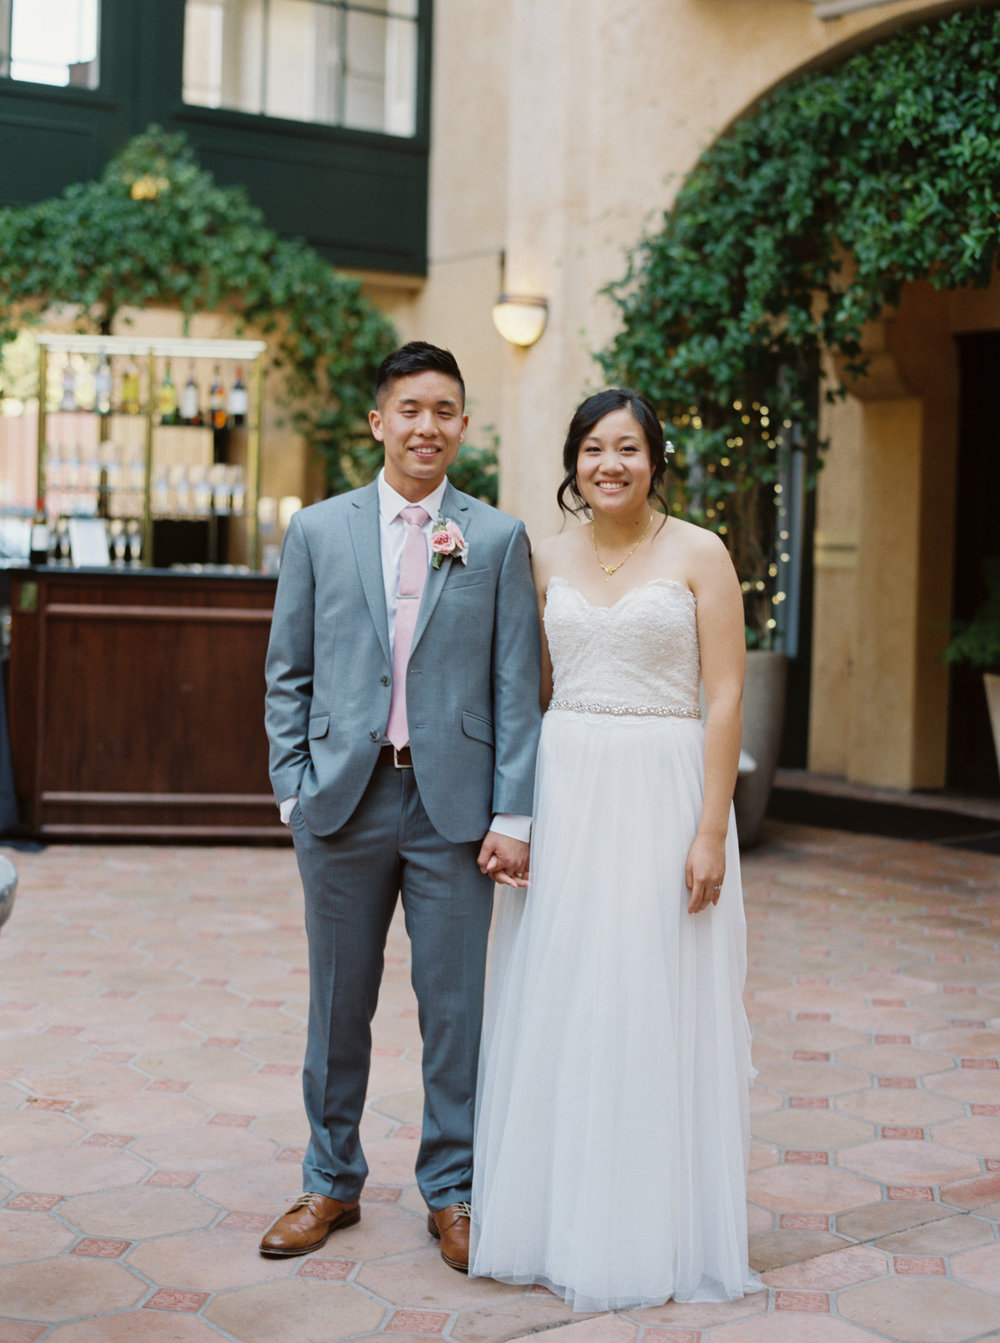 trynhphoto_wedding_photography_Standford_PaloAlto_SF_BayArea_Destination_OC_HA-378.jpg